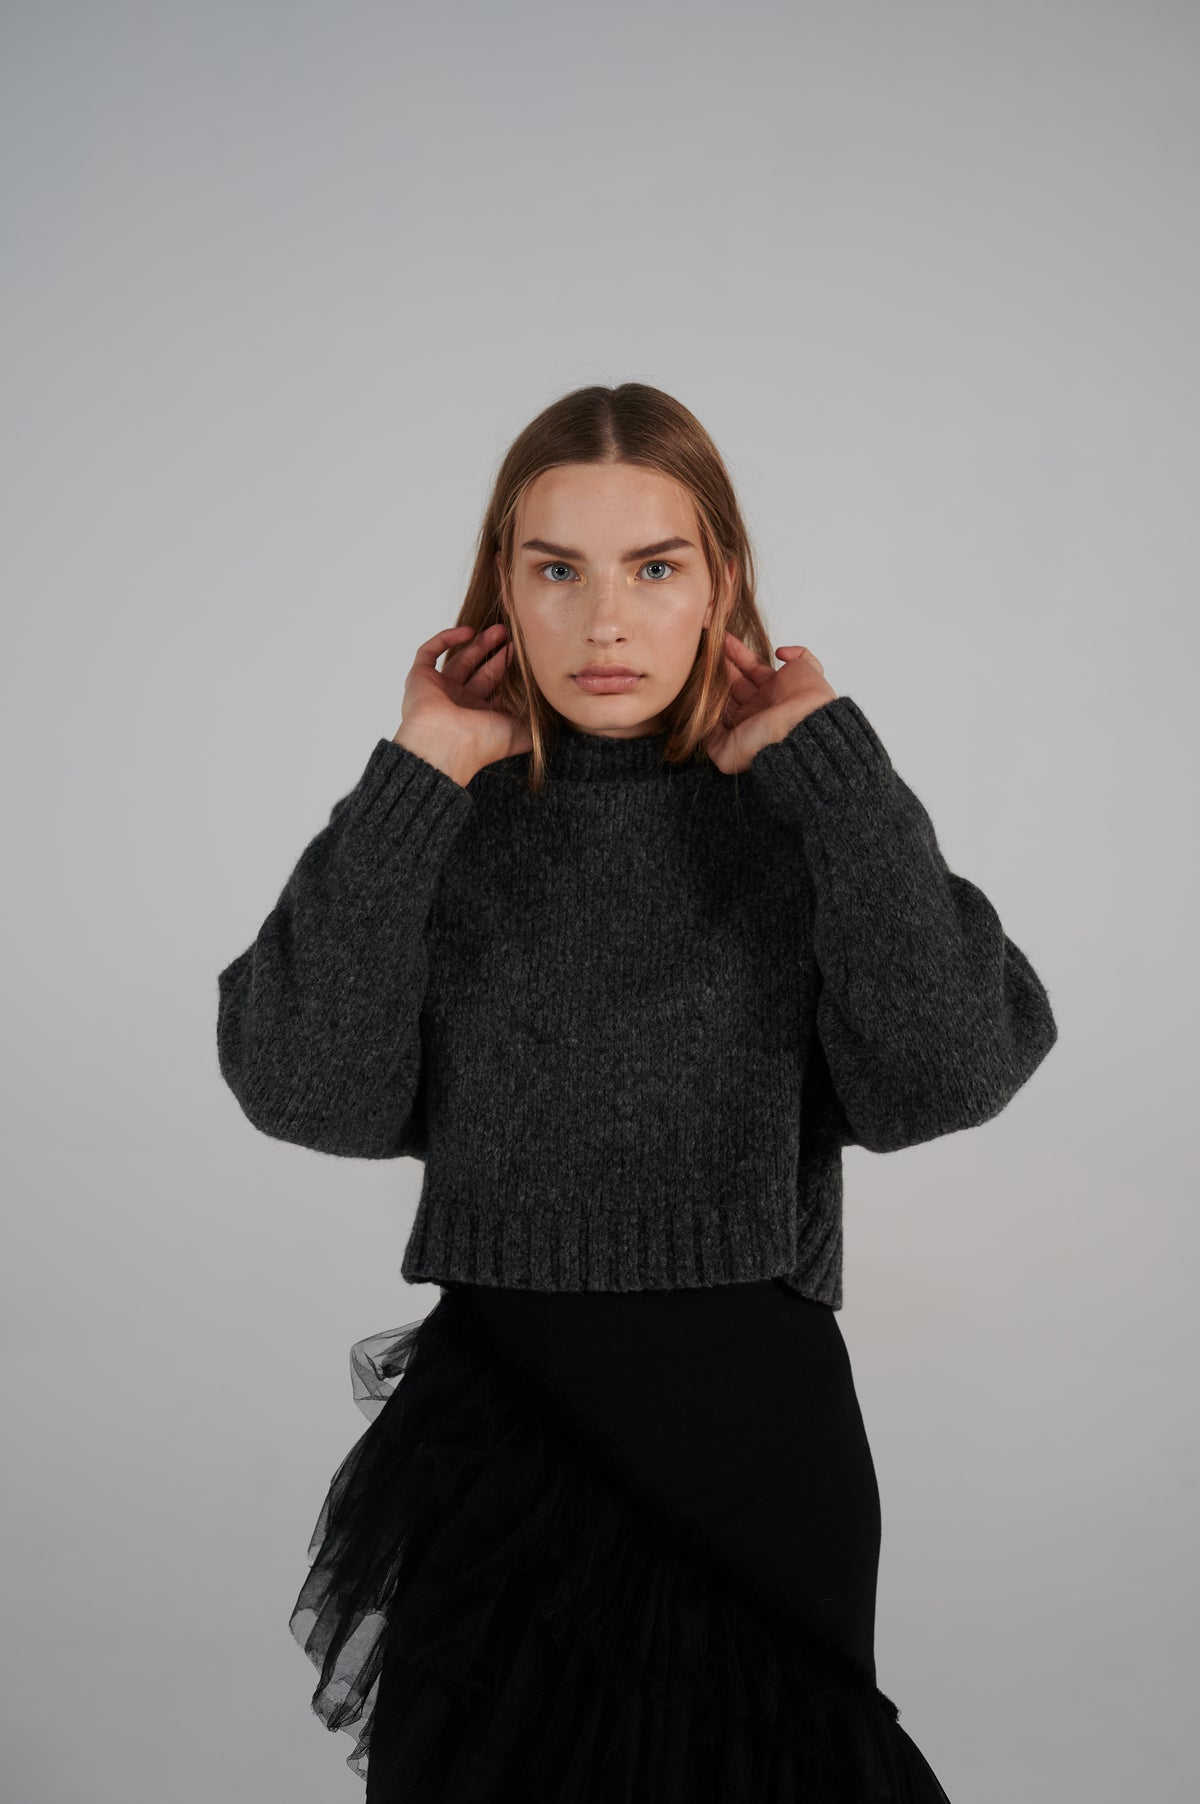 le-slap-sweater-details-virgin-wool-crew-neck-long-sleeves-dark-grey.jpg